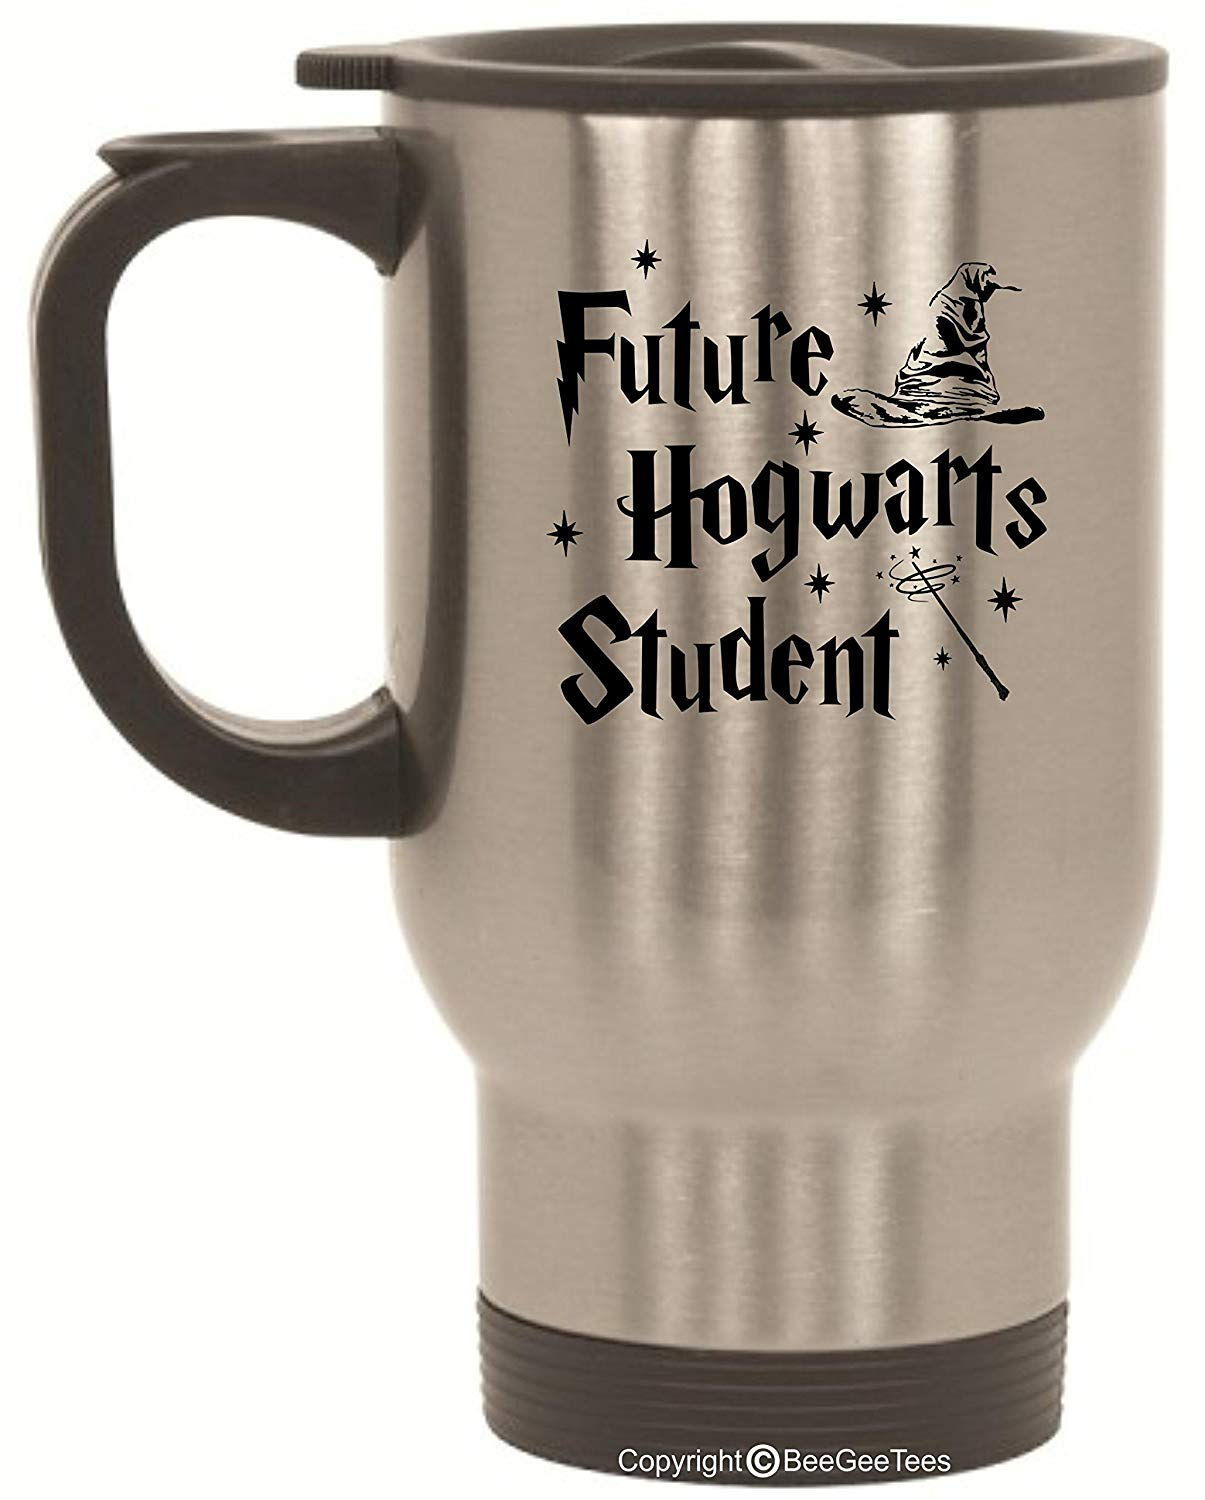 Future Hogwarts Student Funny Harry Potter Inspired Stainless Steel Travel Mug for Wizards by BeeGeeTees (14 oz)